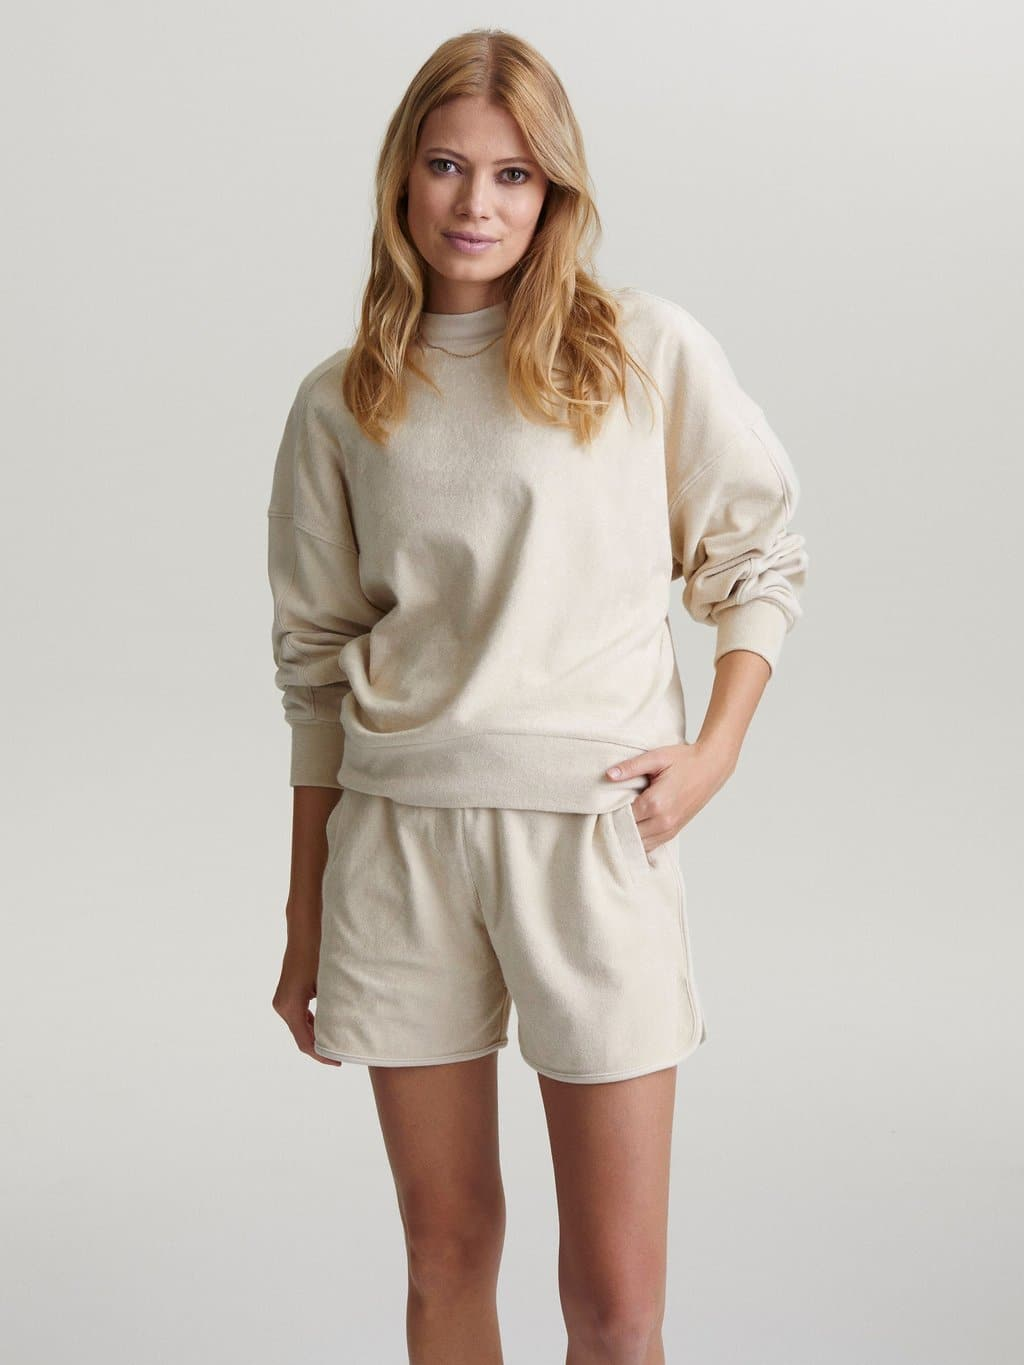 Lyle Top Sandshell, Frottee Sweater, Sommersweater Varley